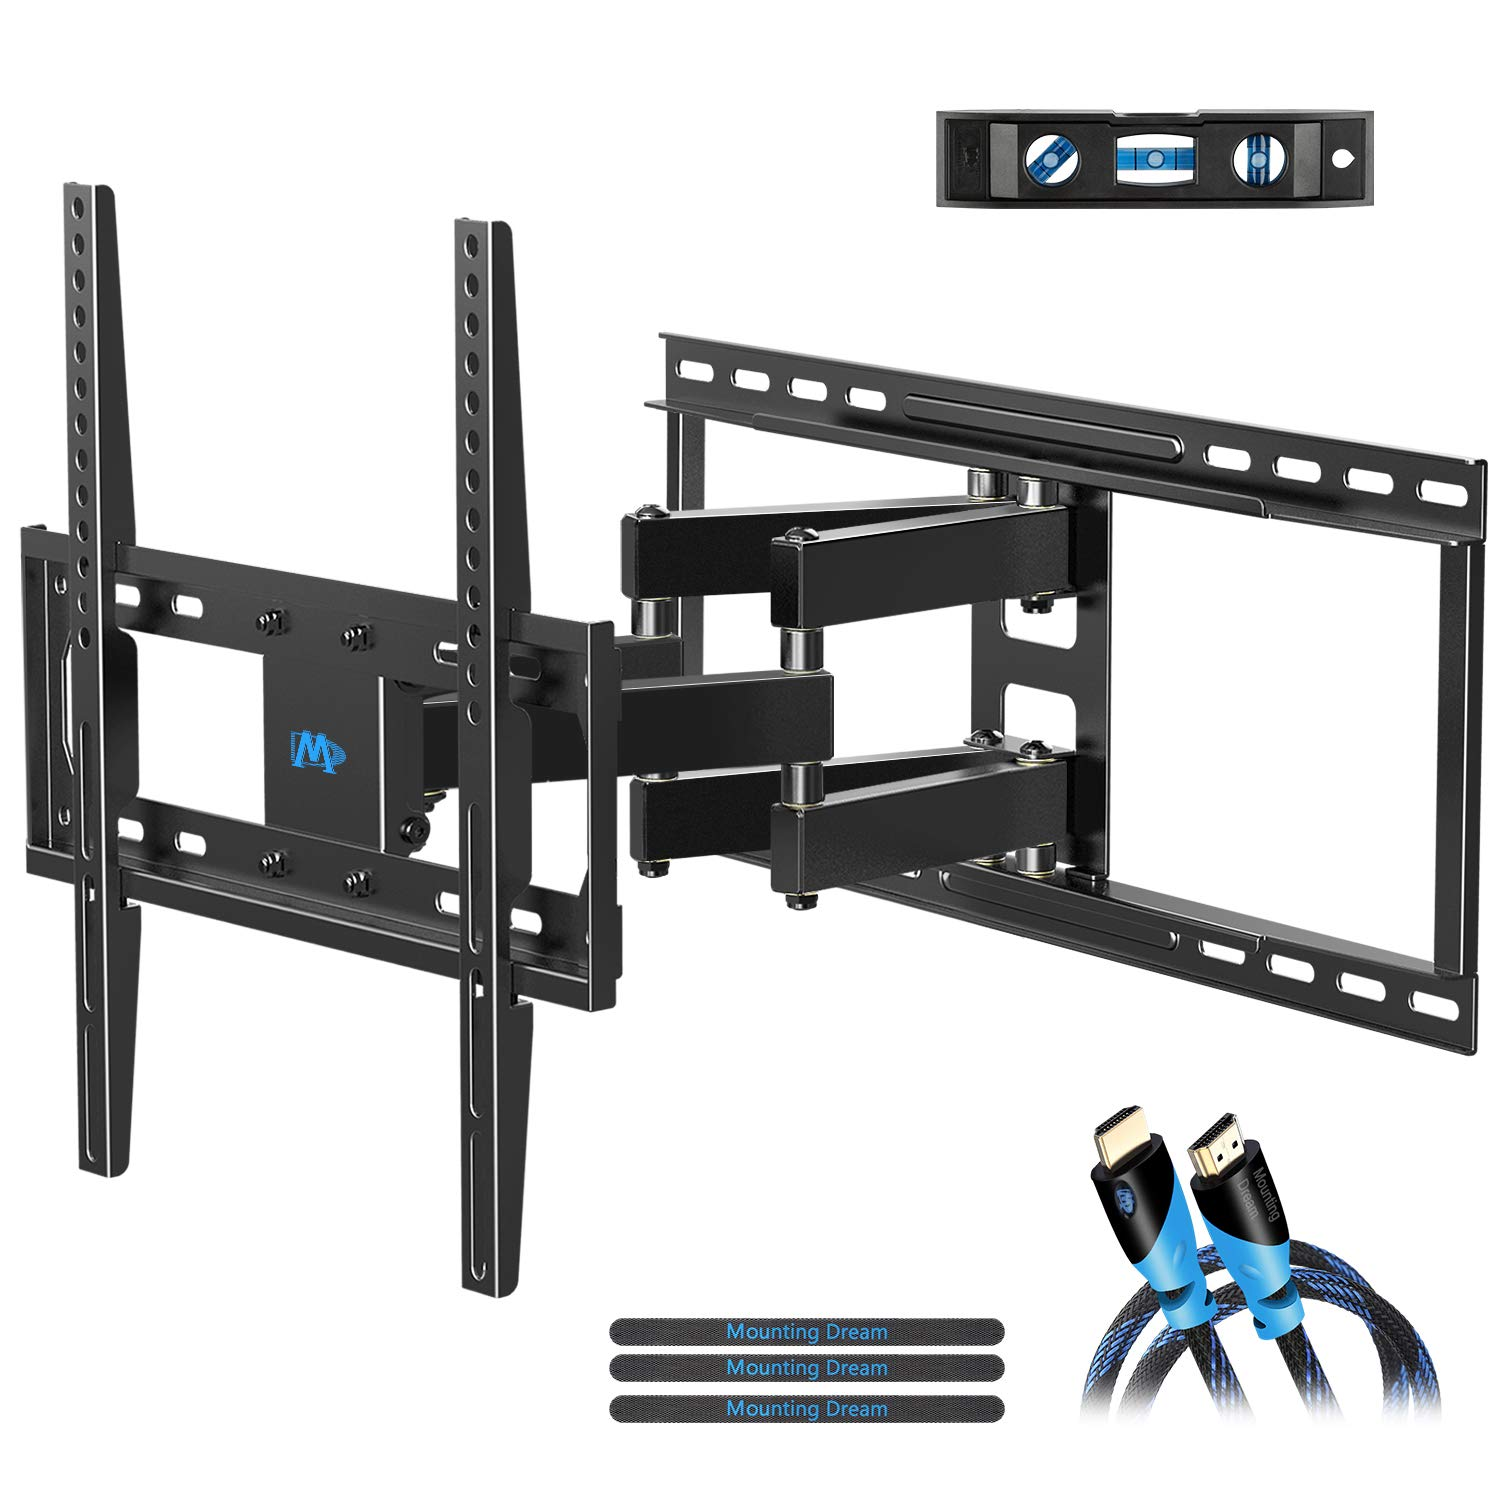 Mounting Dream MD2380 TV Wall Mount Bracket for Most 26-55 Inch LED, LCD, OLED and Plasma Flat Screen TV, with Full Motion Swivel Articulating Dual Arms, up to VESA 400x400mm with Tilting for Monitor FBA_LYSB00SFSU53G-ELECTRNCS